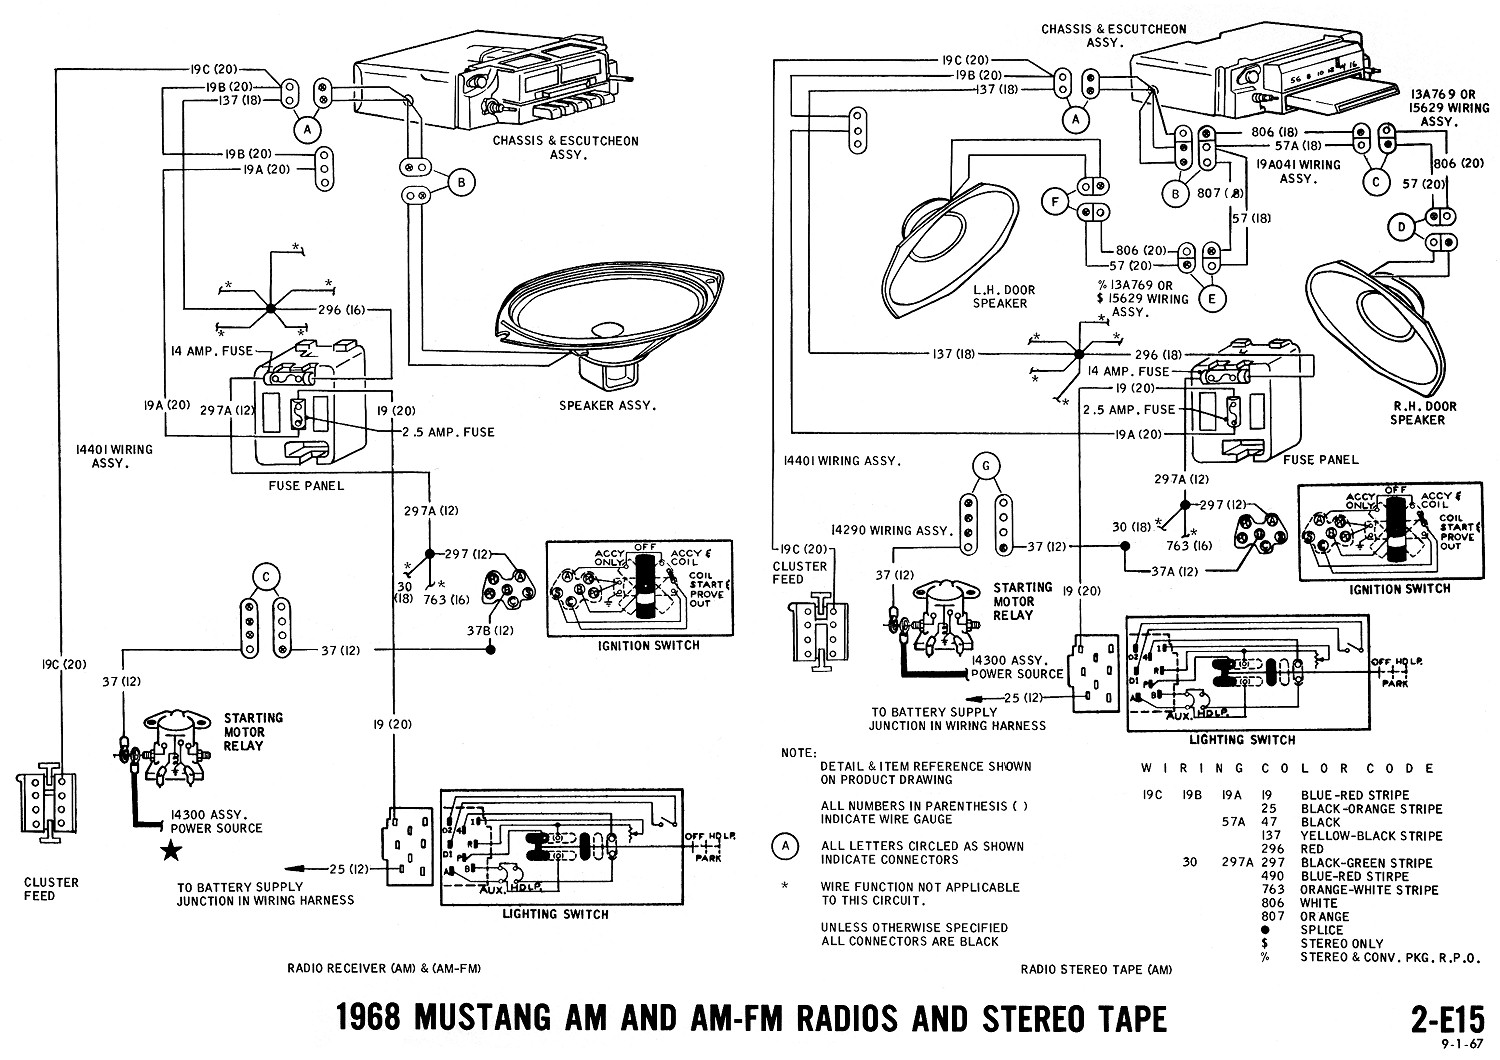 E15 1968 mustang wiring diagrams evolving software 2007 mustang gt stereo wiring diagram at webbmarketing.co